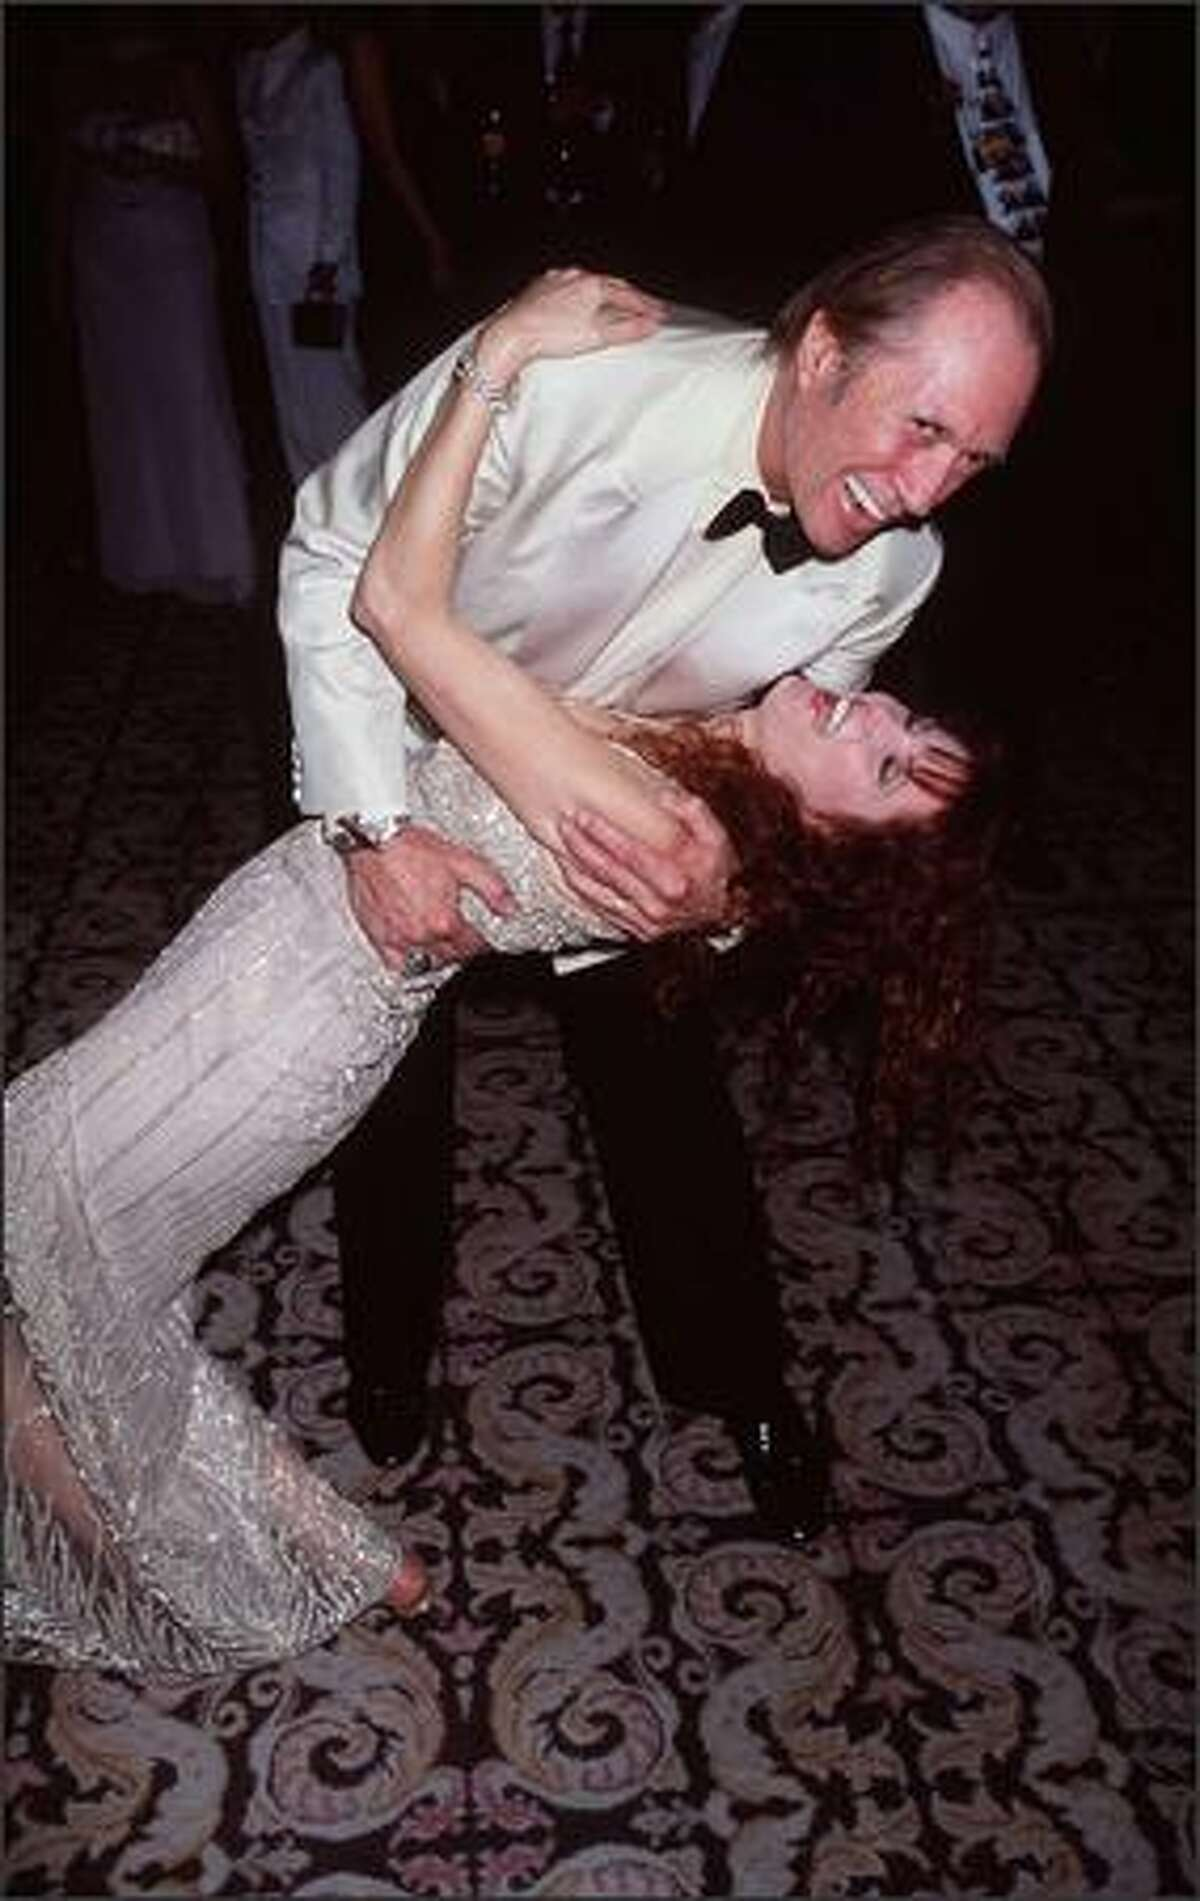 Actor David Carradine dips his fourth wife, Marina, at the 50th Annual Directors Guild Awards March 6, 1998, in Century City, Calif. Carradine charged People Weekly of libel and claims the magazine violated a